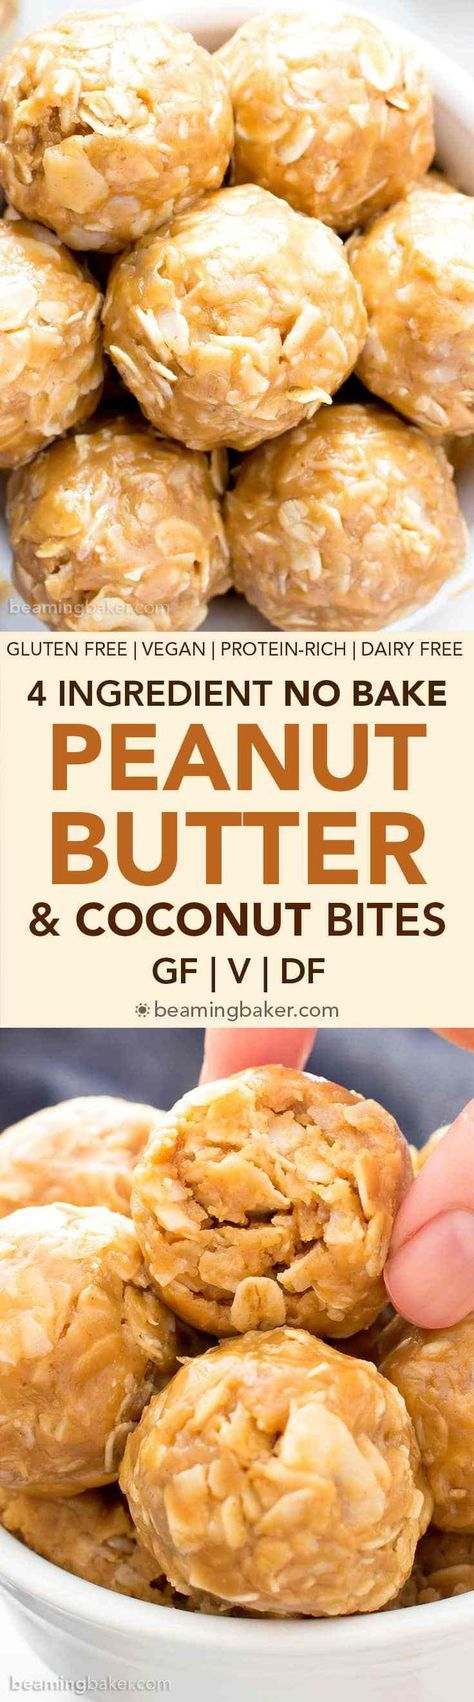 ~~Four Ingredient No Bake Peanut Butter Coconut Energy Bites (V, GF) | a quick 'n easy One Bowl recipe for tasty protein-packed energy bites bursting with peanut butter and coconut! | BeamingBaker.com~~